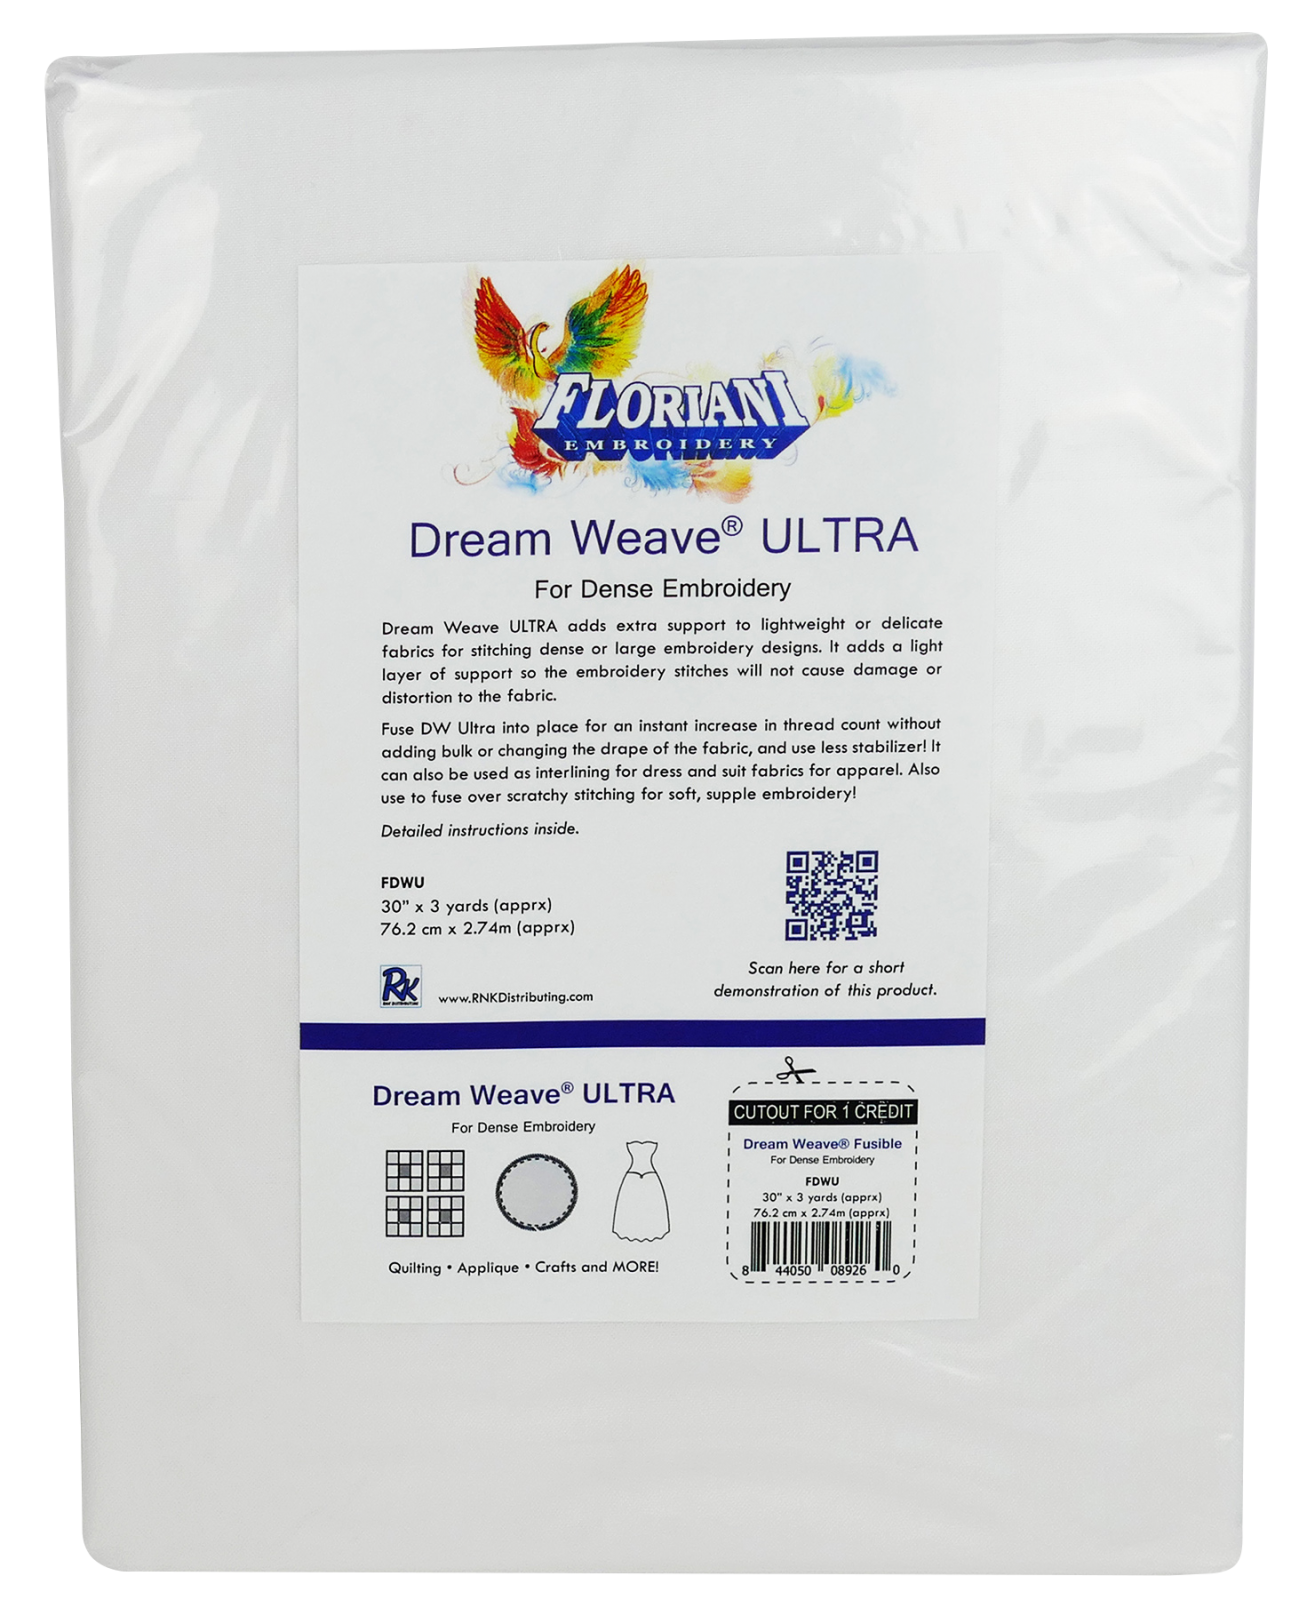 FL Dream Weave Ultra White (Fusible) 30 x 3 yds